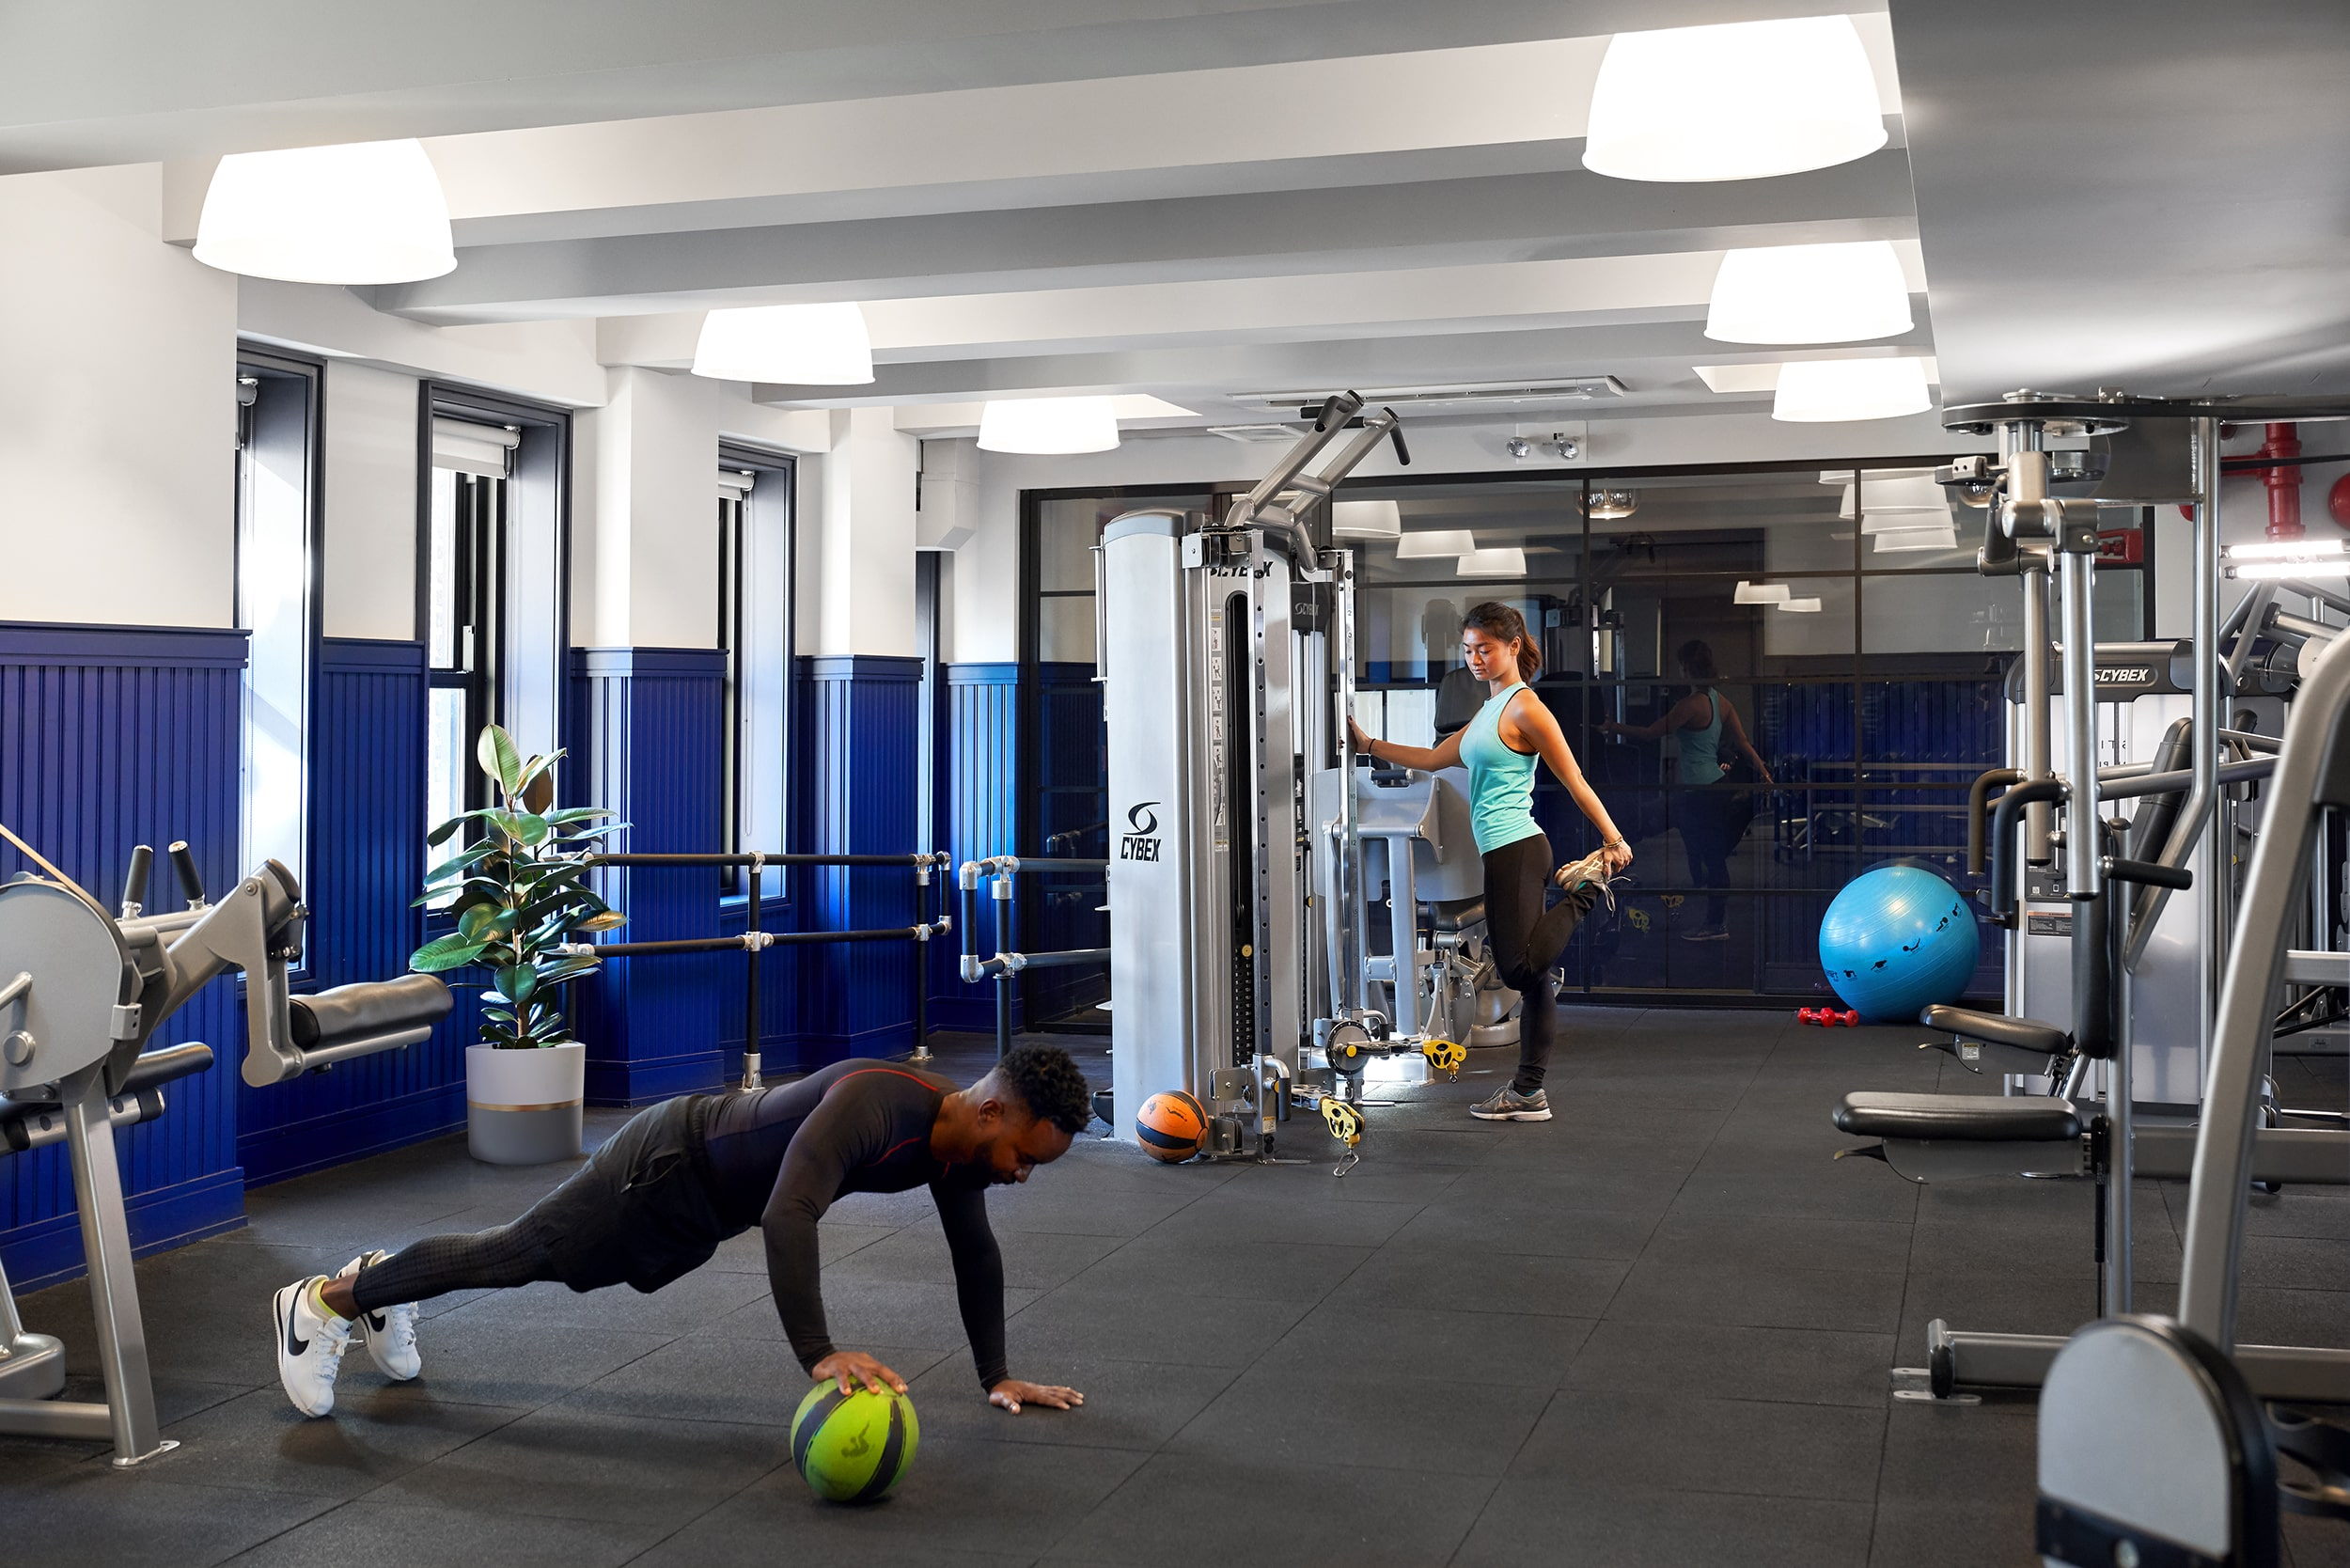 Man and woman working out and stretching in the gym